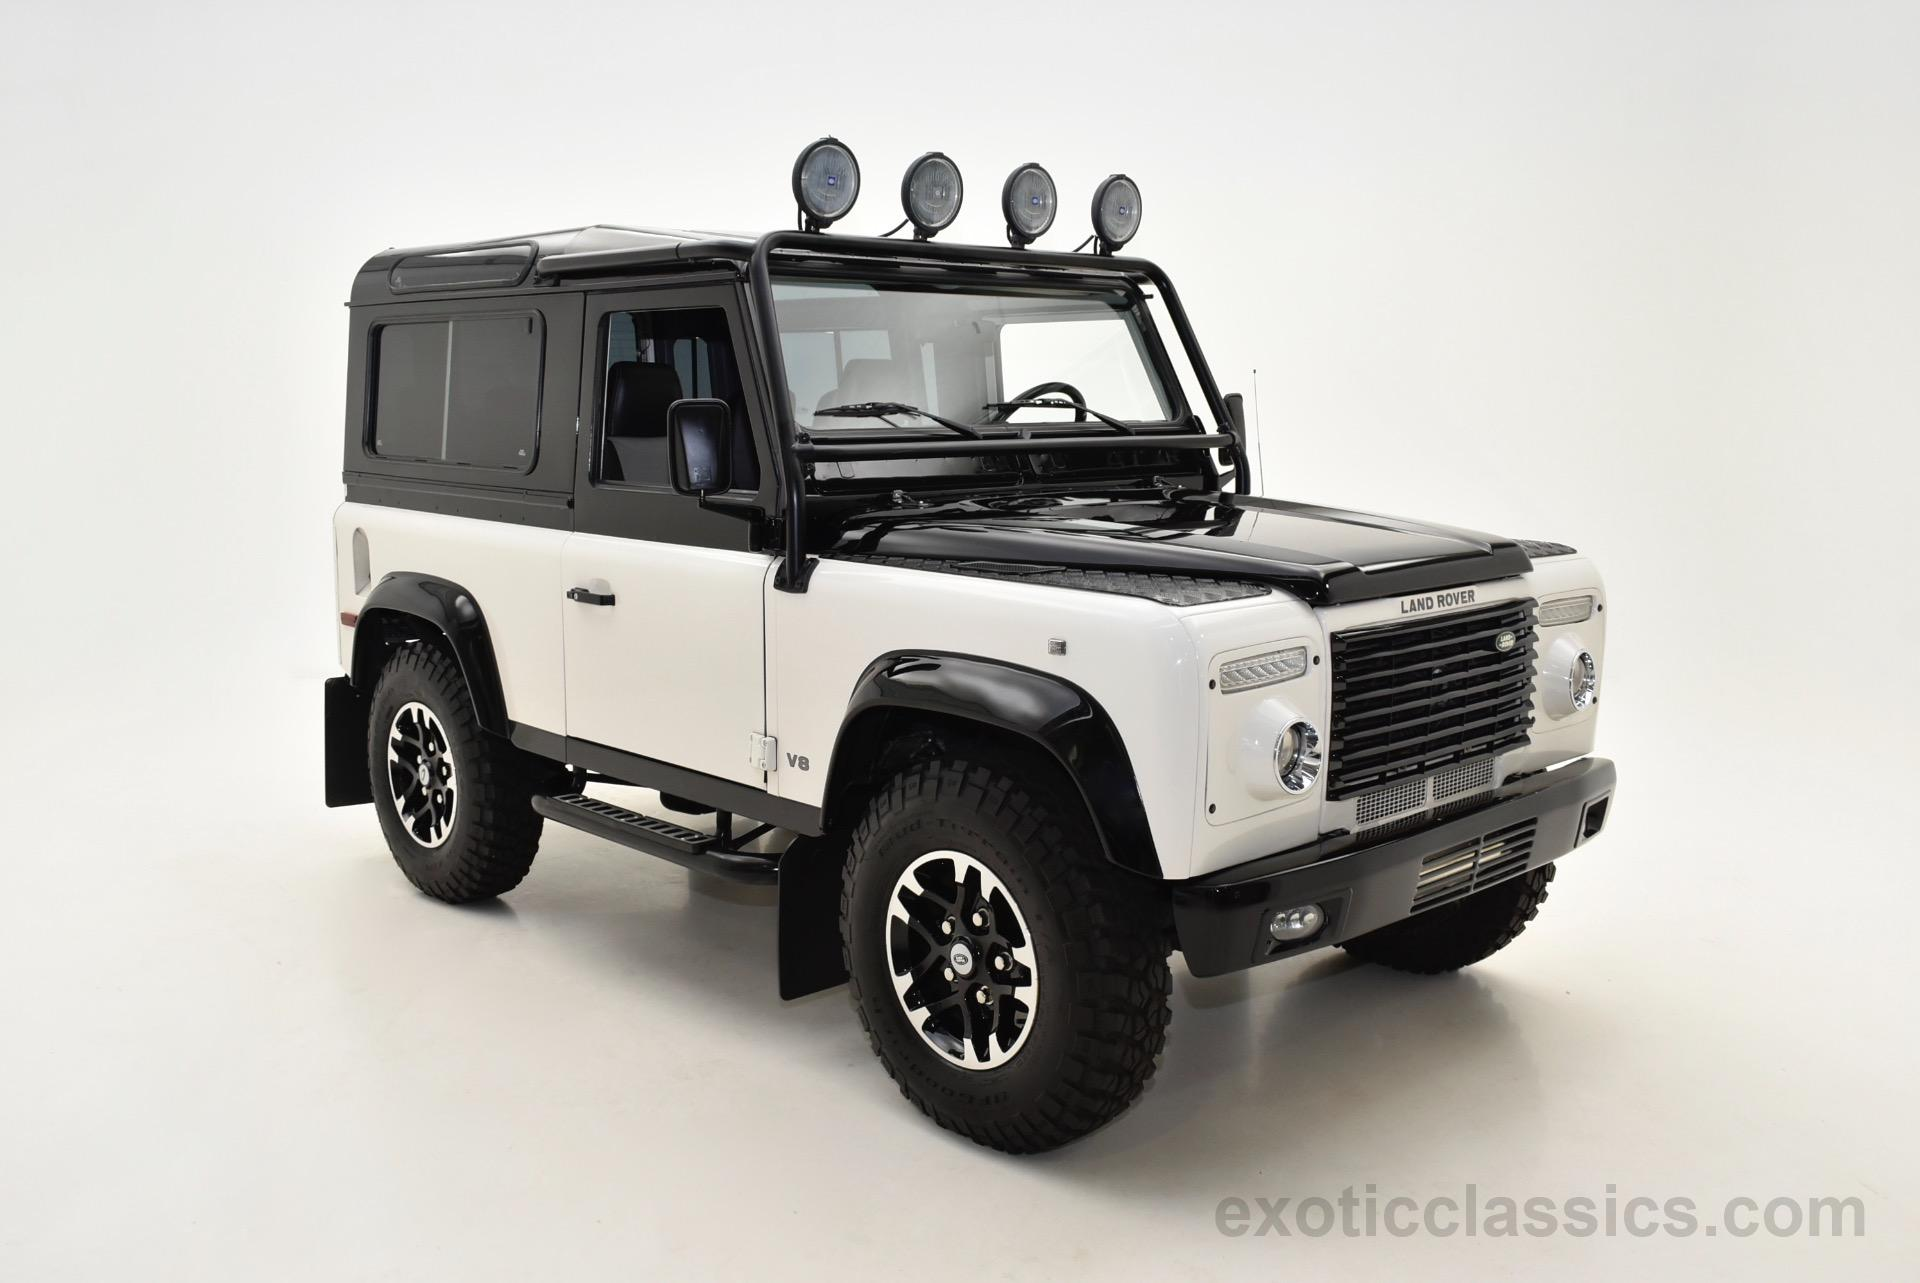 1997 Land Rover Defender 90 Exotic and Classic Car Dealership